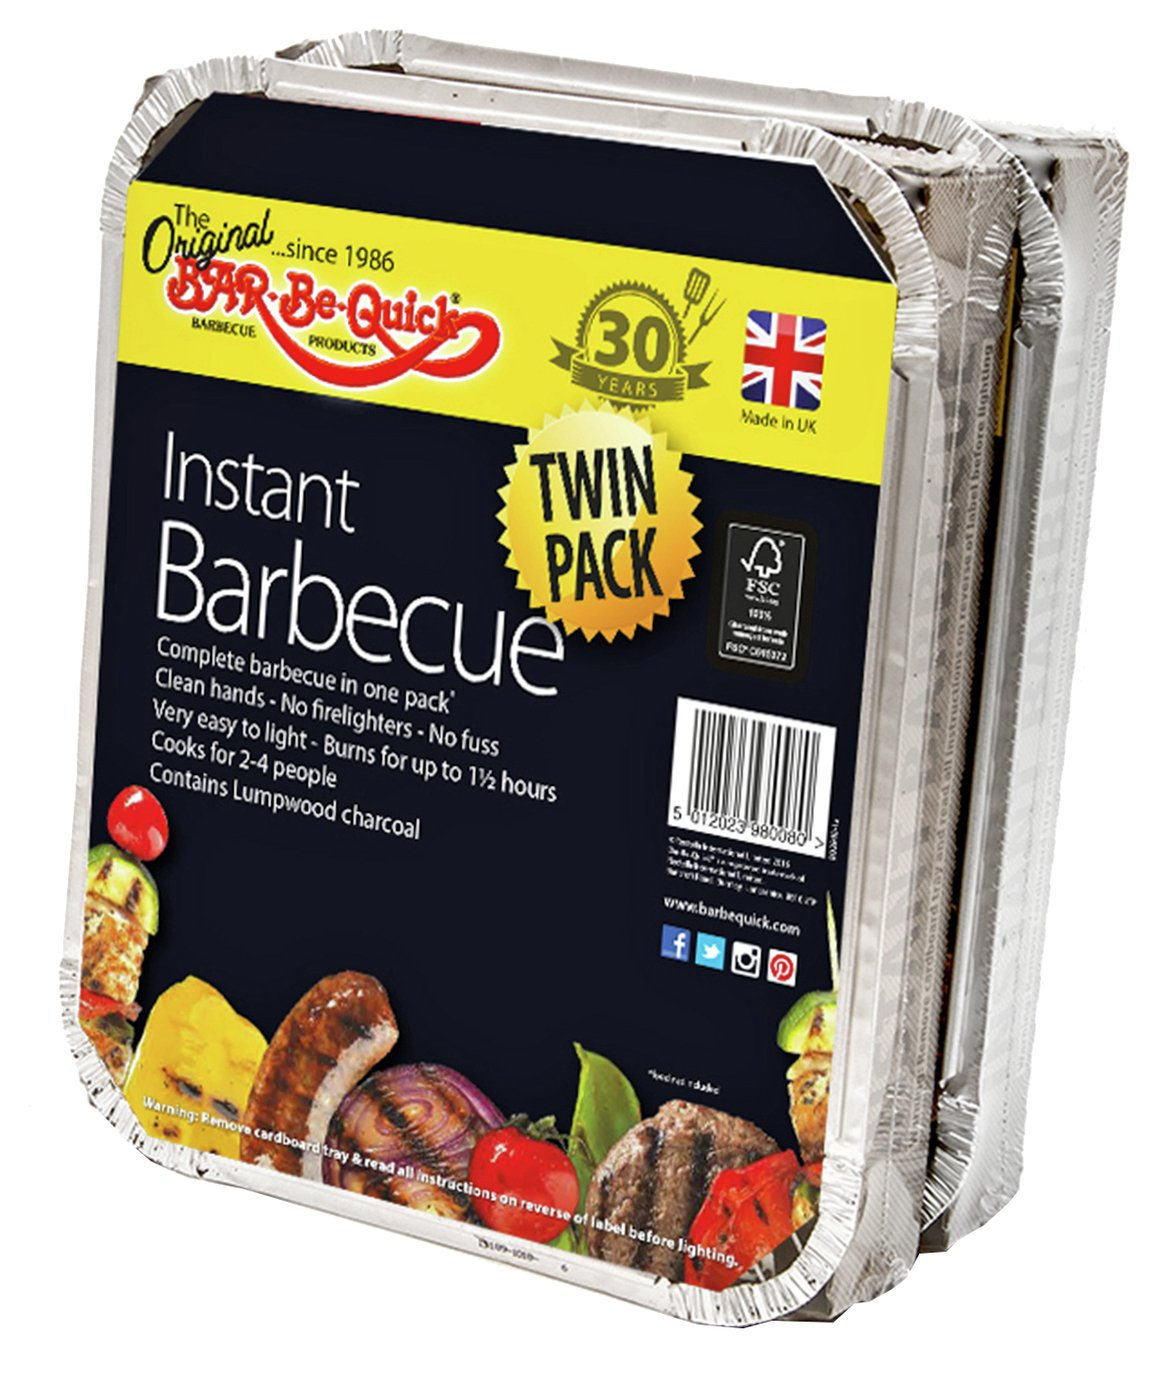 Image of Bar-Be-Quick Instant - Charcoal - BBQ - Twin Pack